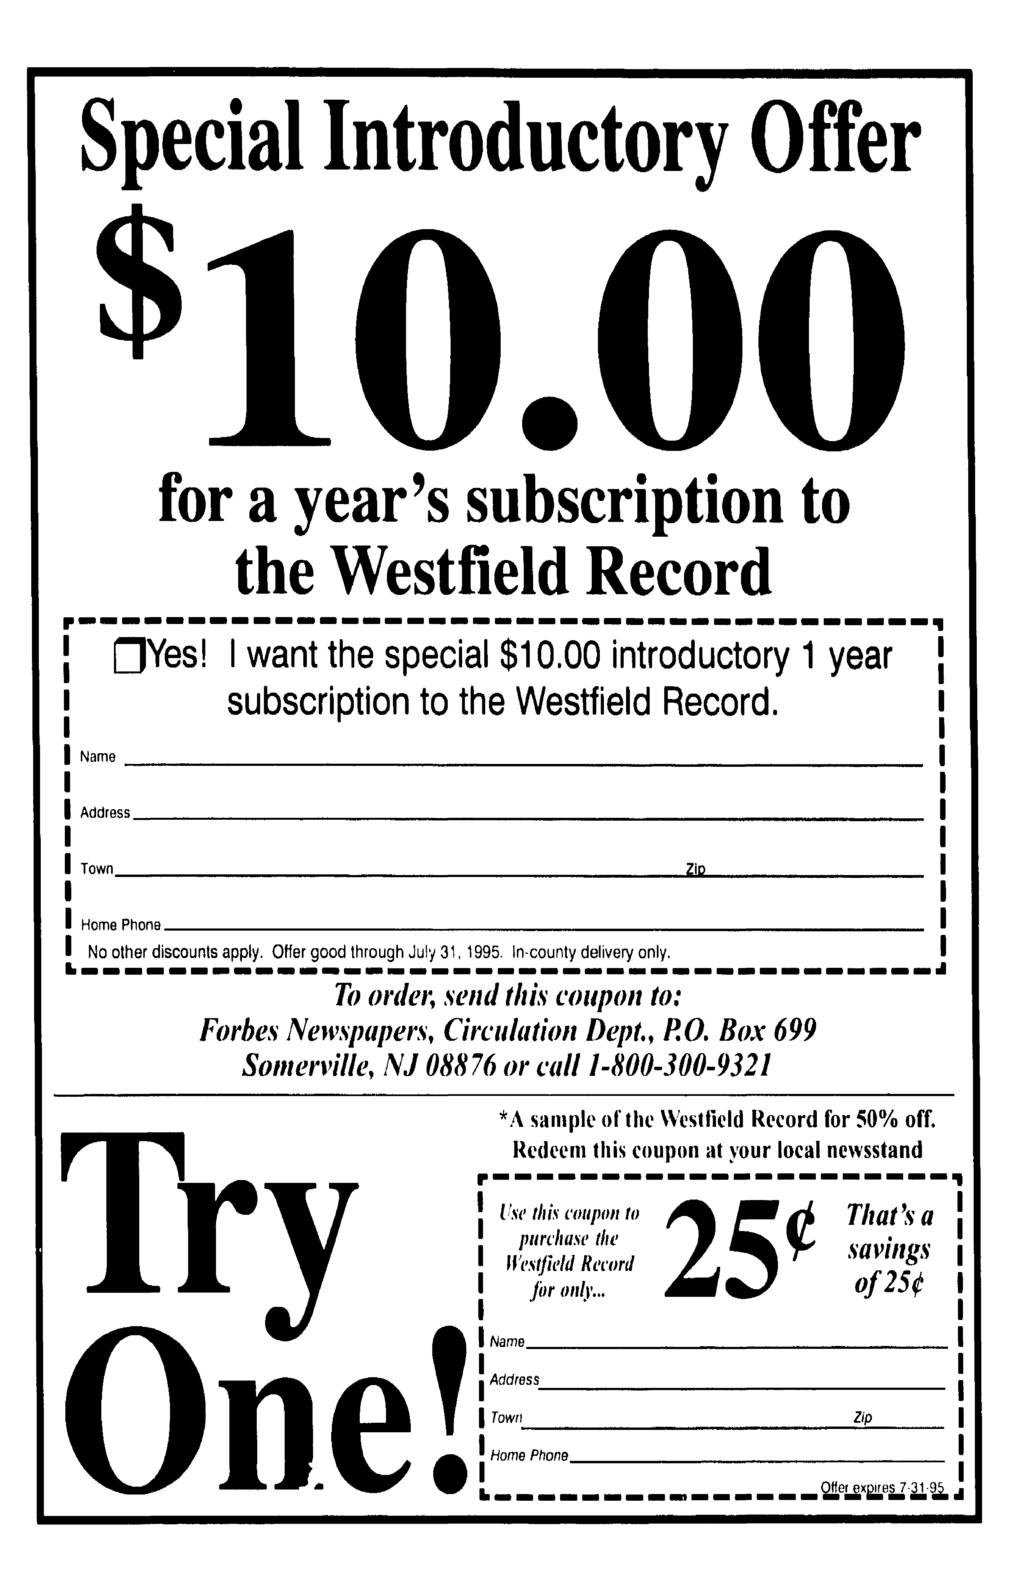 Special ntroductory Offer for a year's subscription to the Westfield Record Yes! want the special $10.00 introductory 1 year subscription to the Westfield Record.